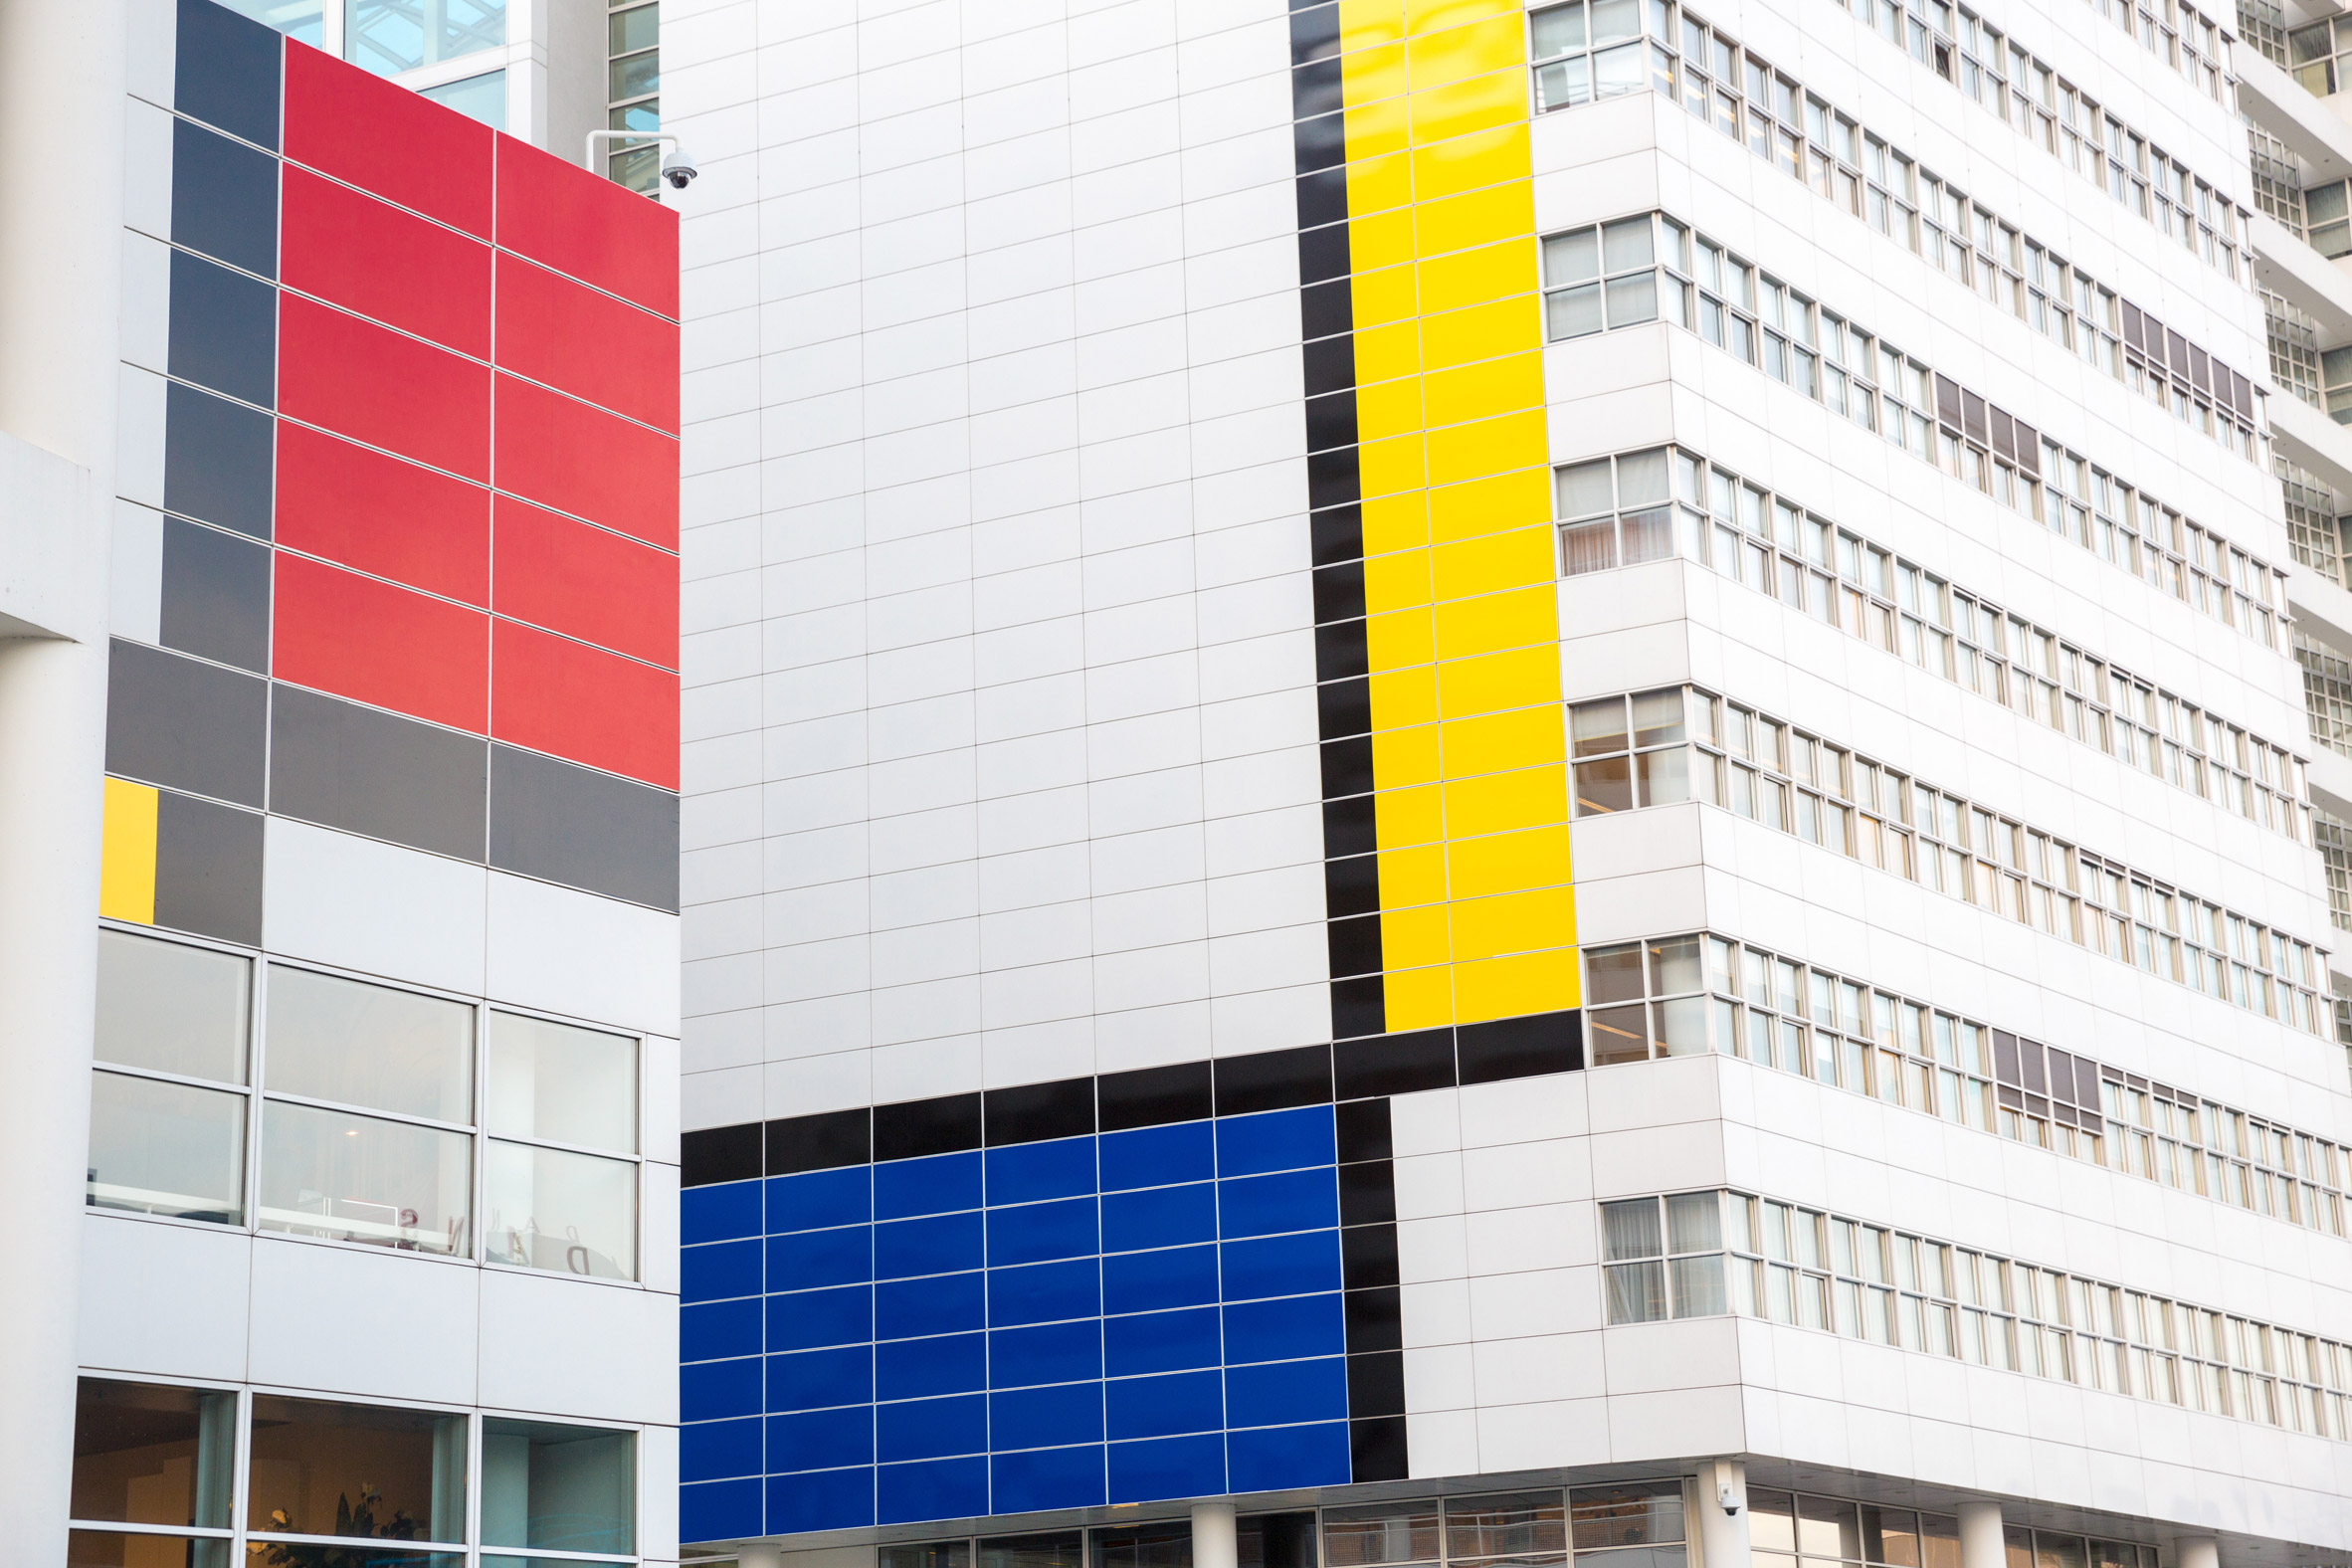 Mondrian-style paintwork covers Richard Meier's City Hall in The Hague